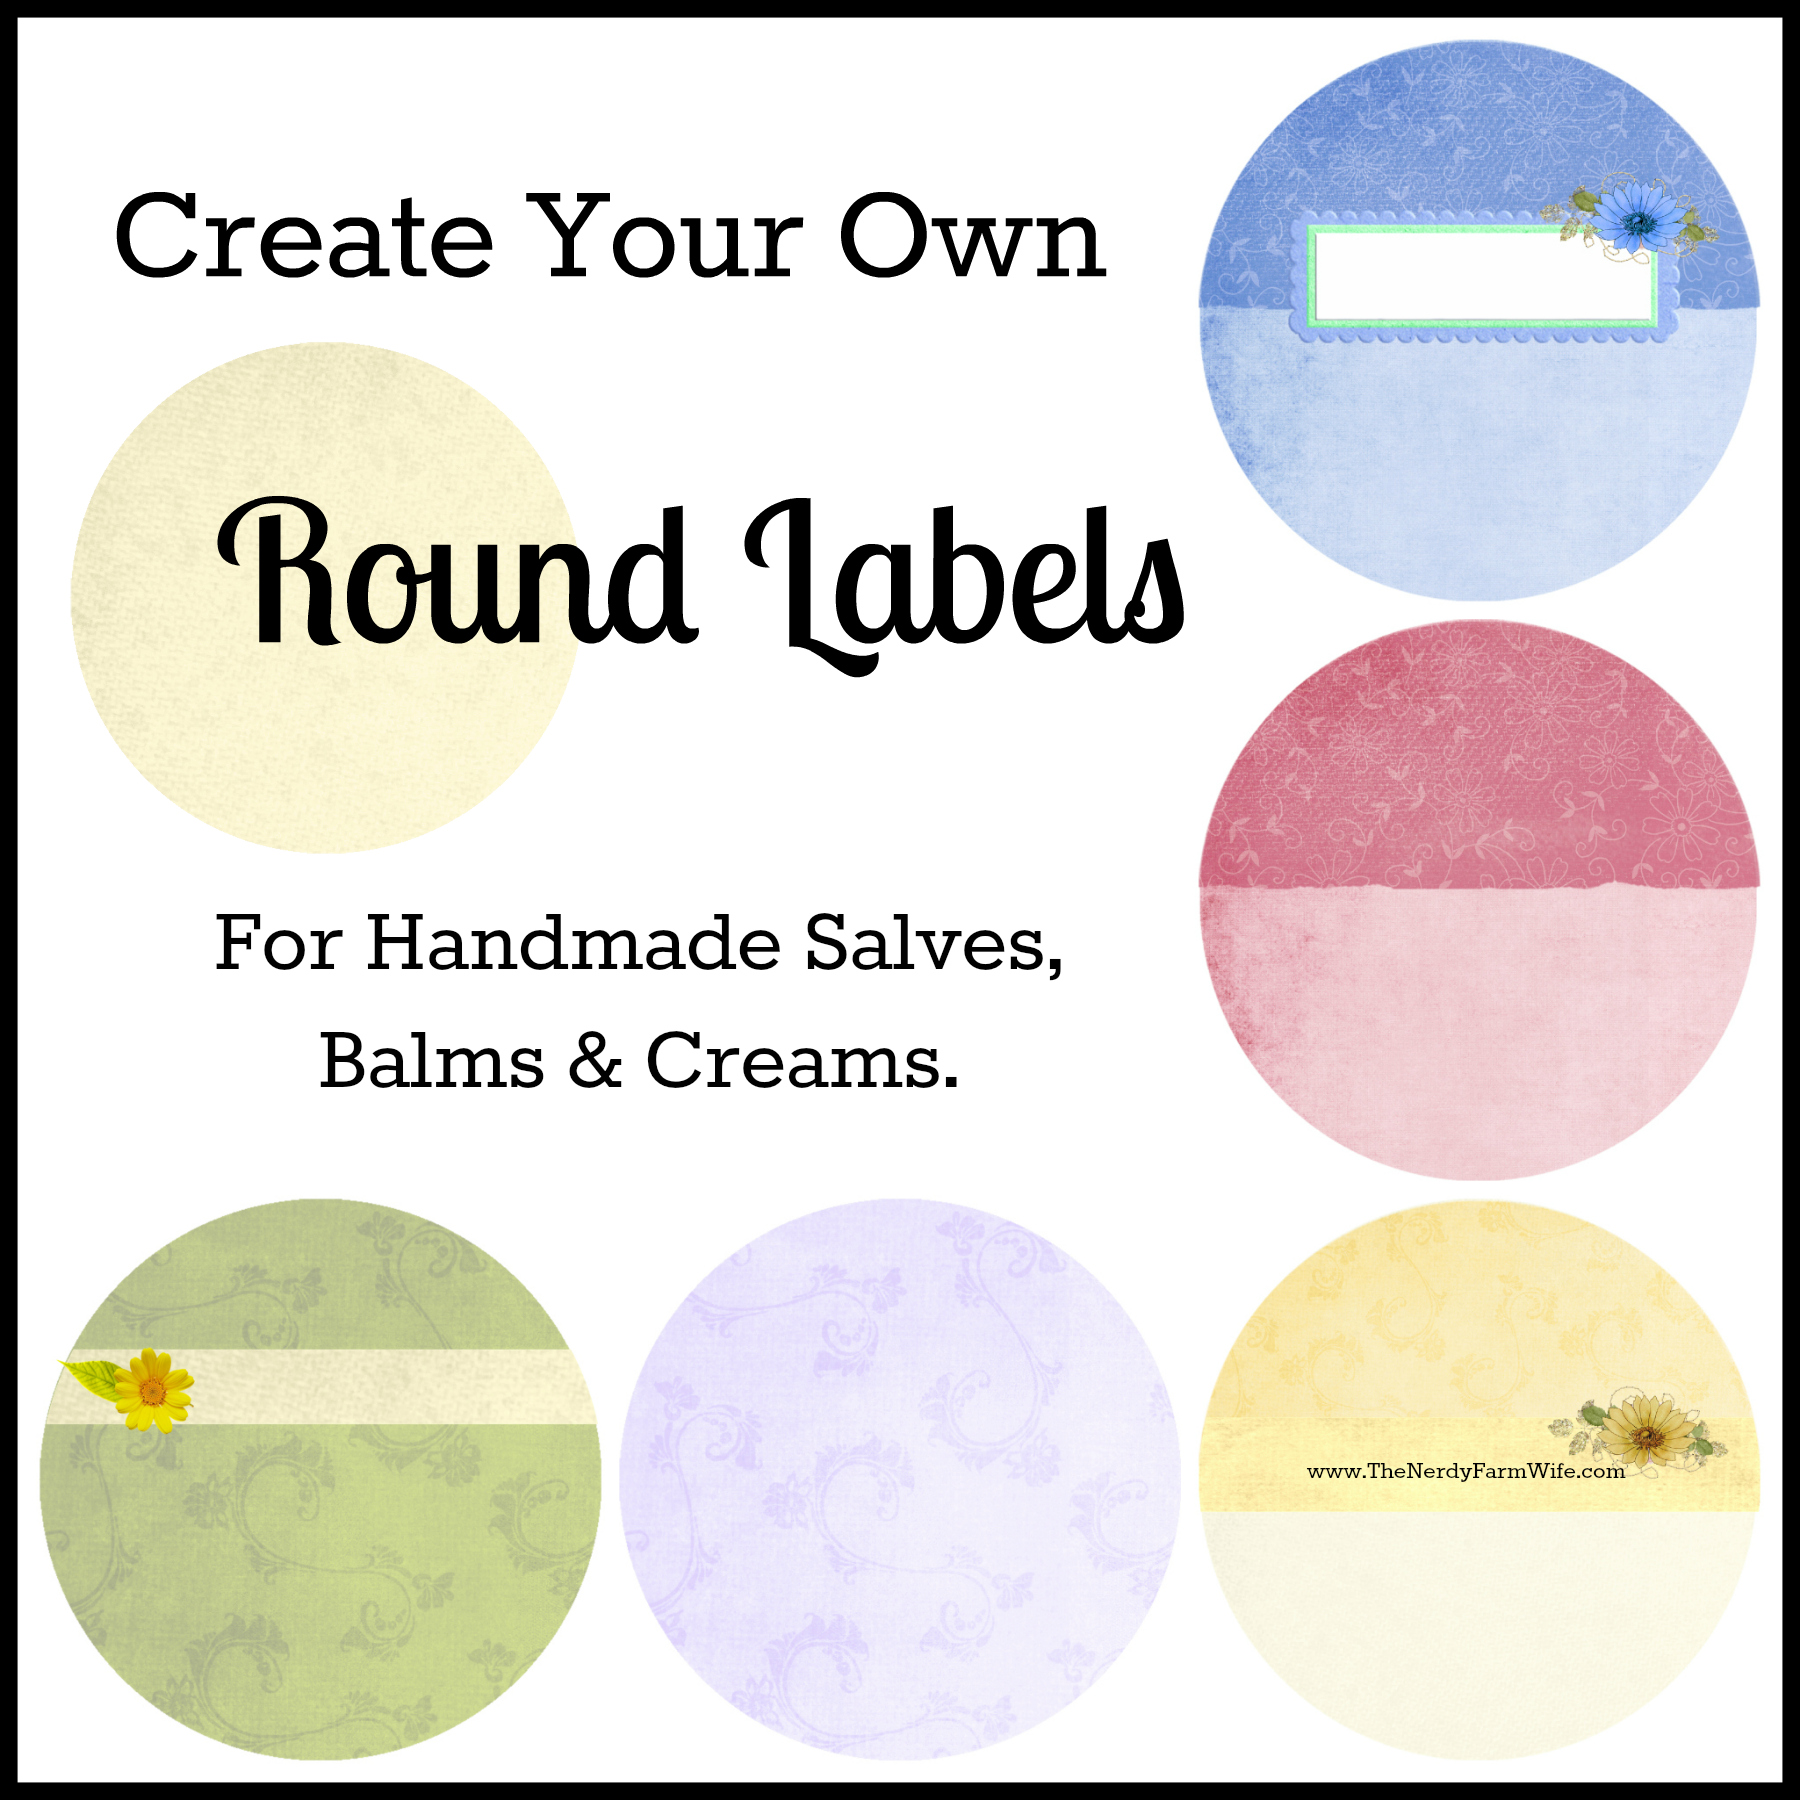 How to create your own round labels the nerdy farm wife for Draw your own design